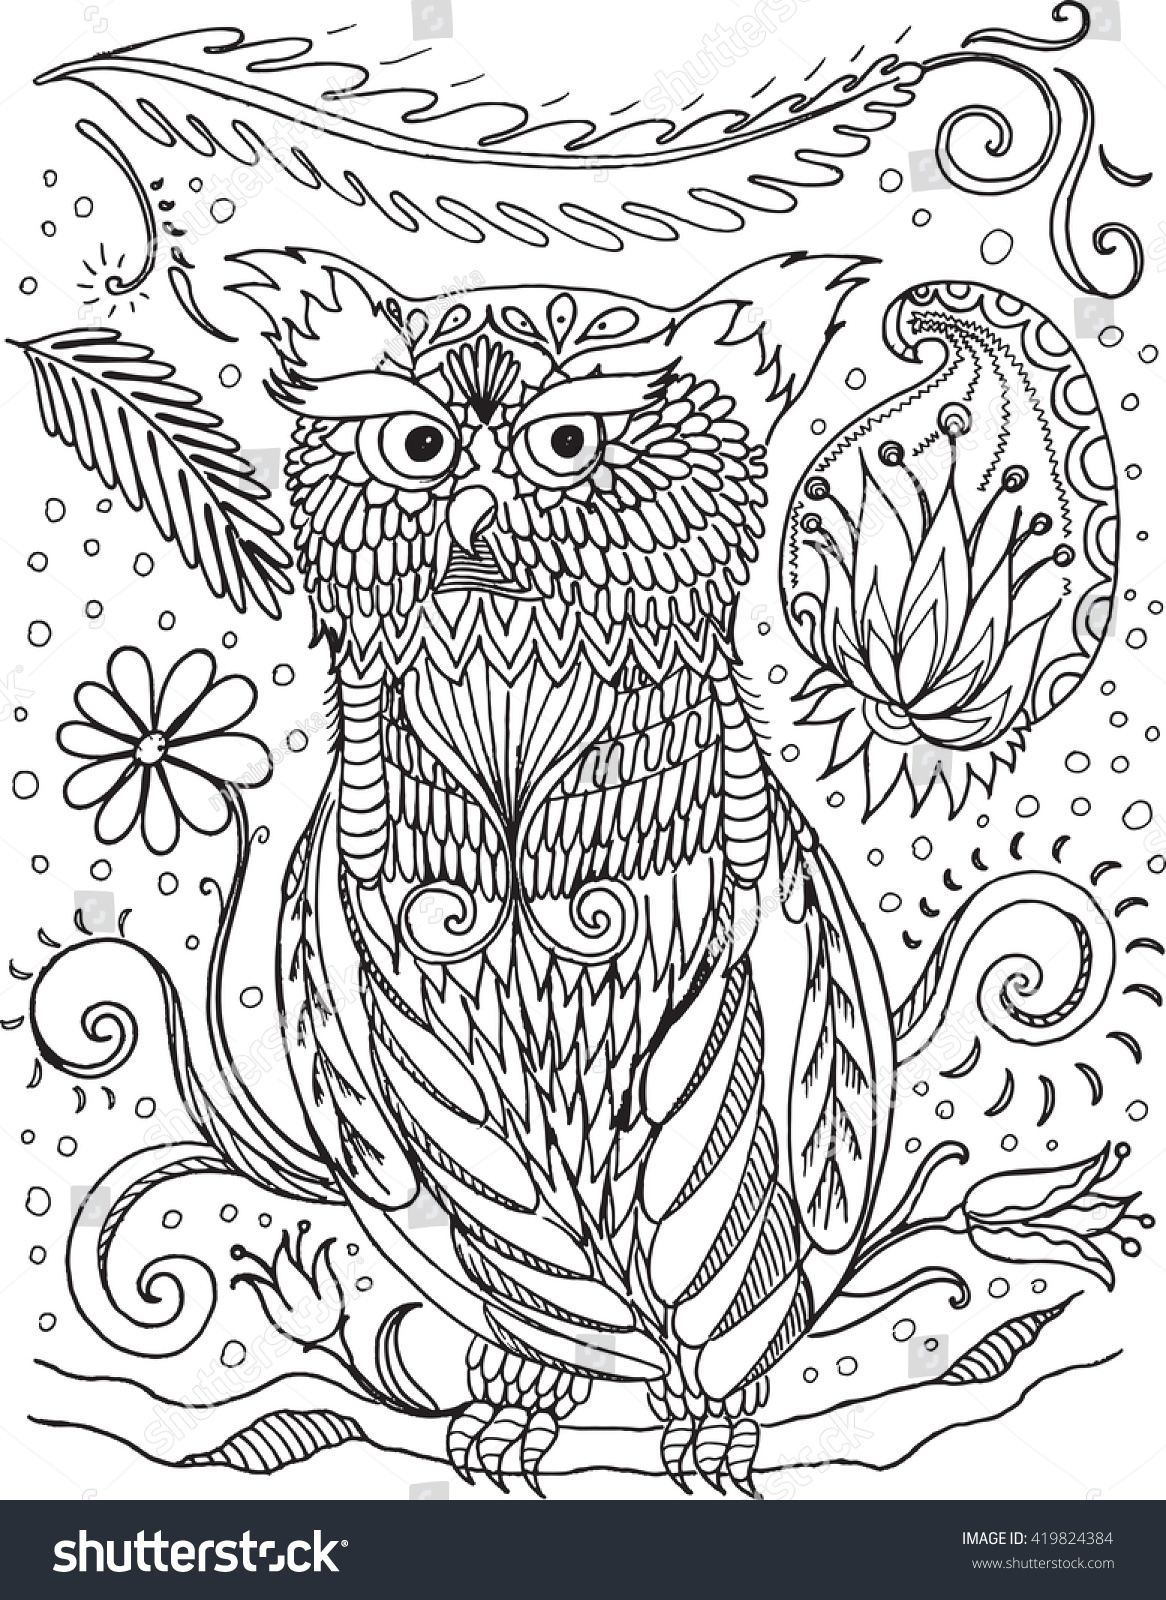 Coloring Book For Adult And Older Children Page With Decorative Vintage Flowers Owl